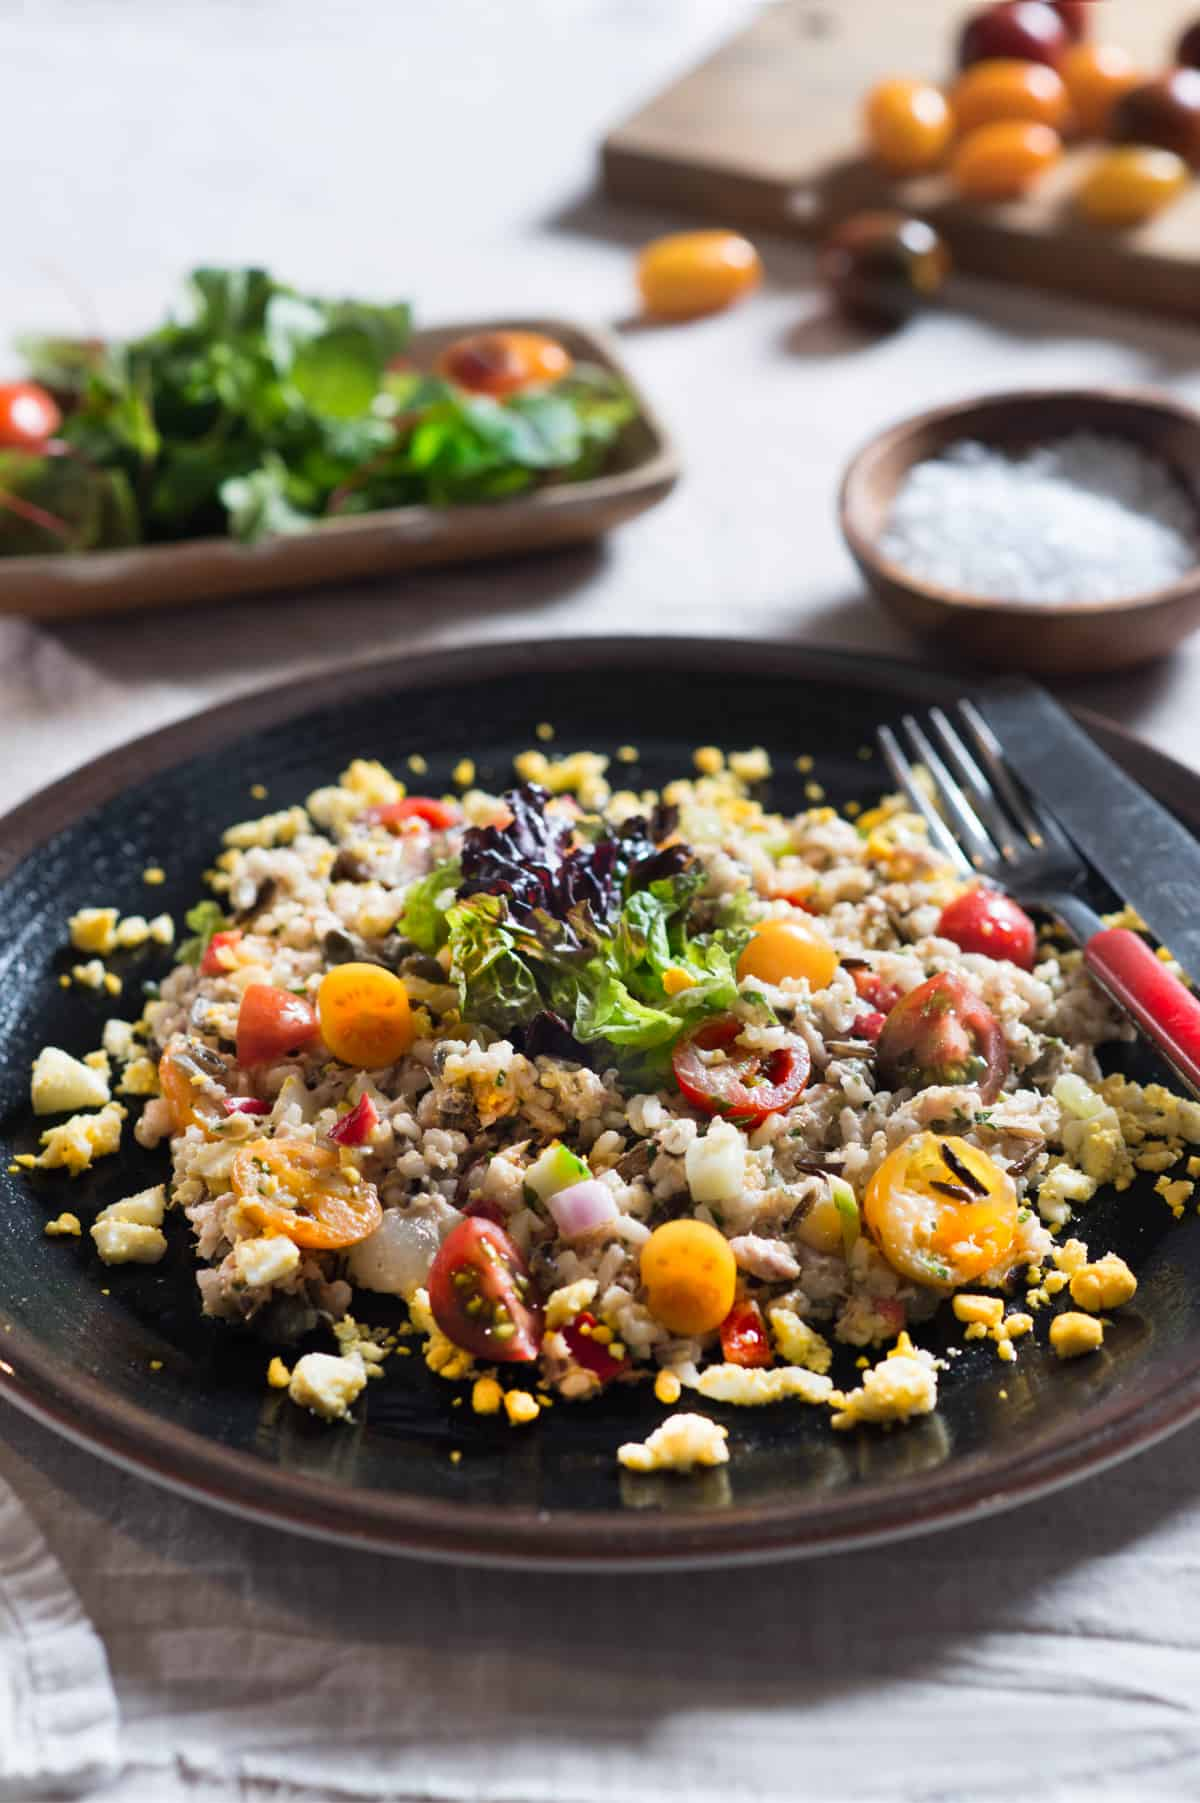 Tuna, Rice & Grains Salad with Vegetables